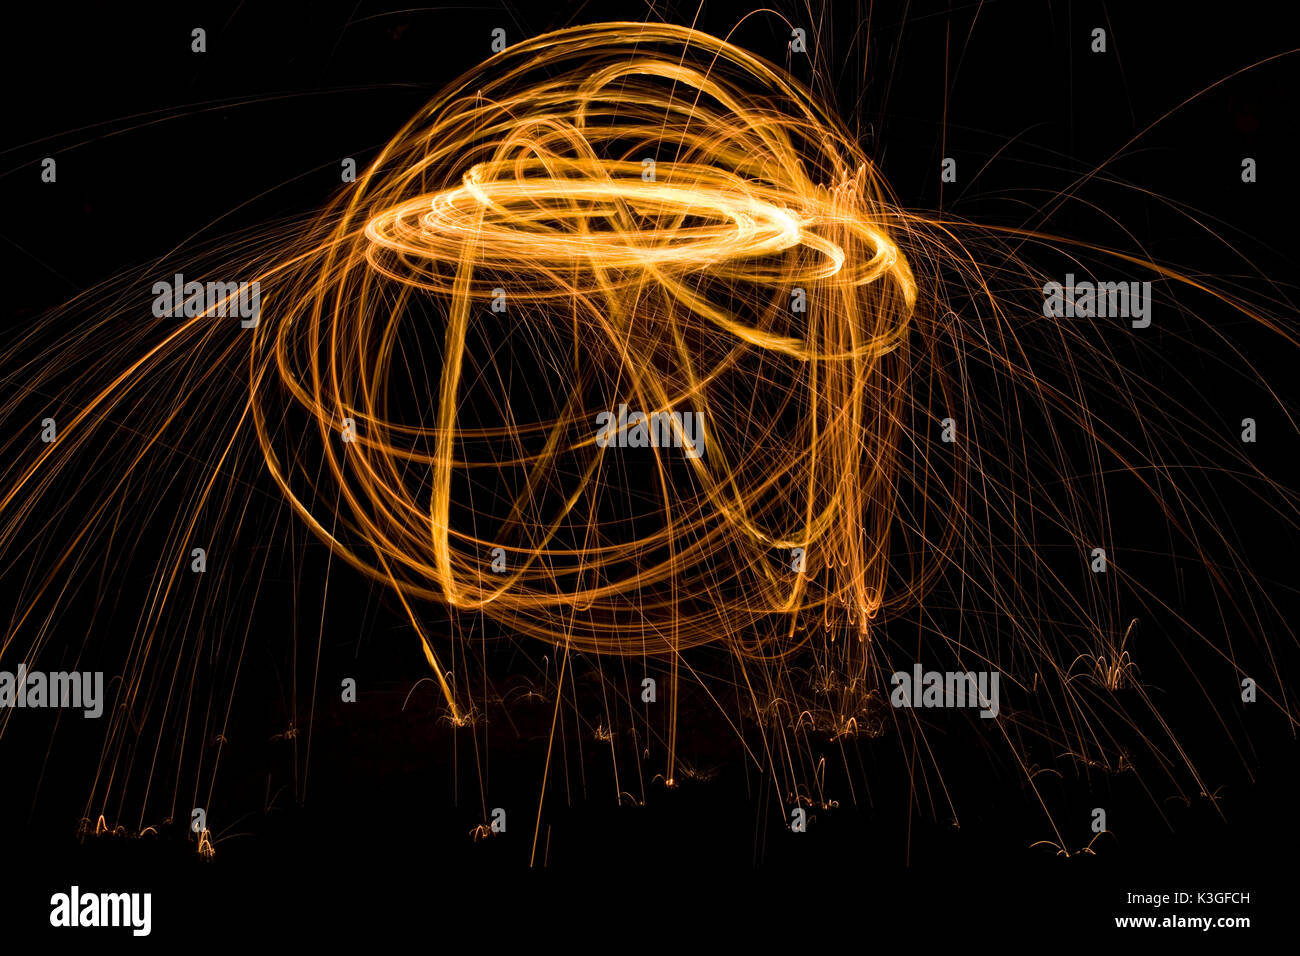 Abstract Path Tracing with Light Painting - Stock Image